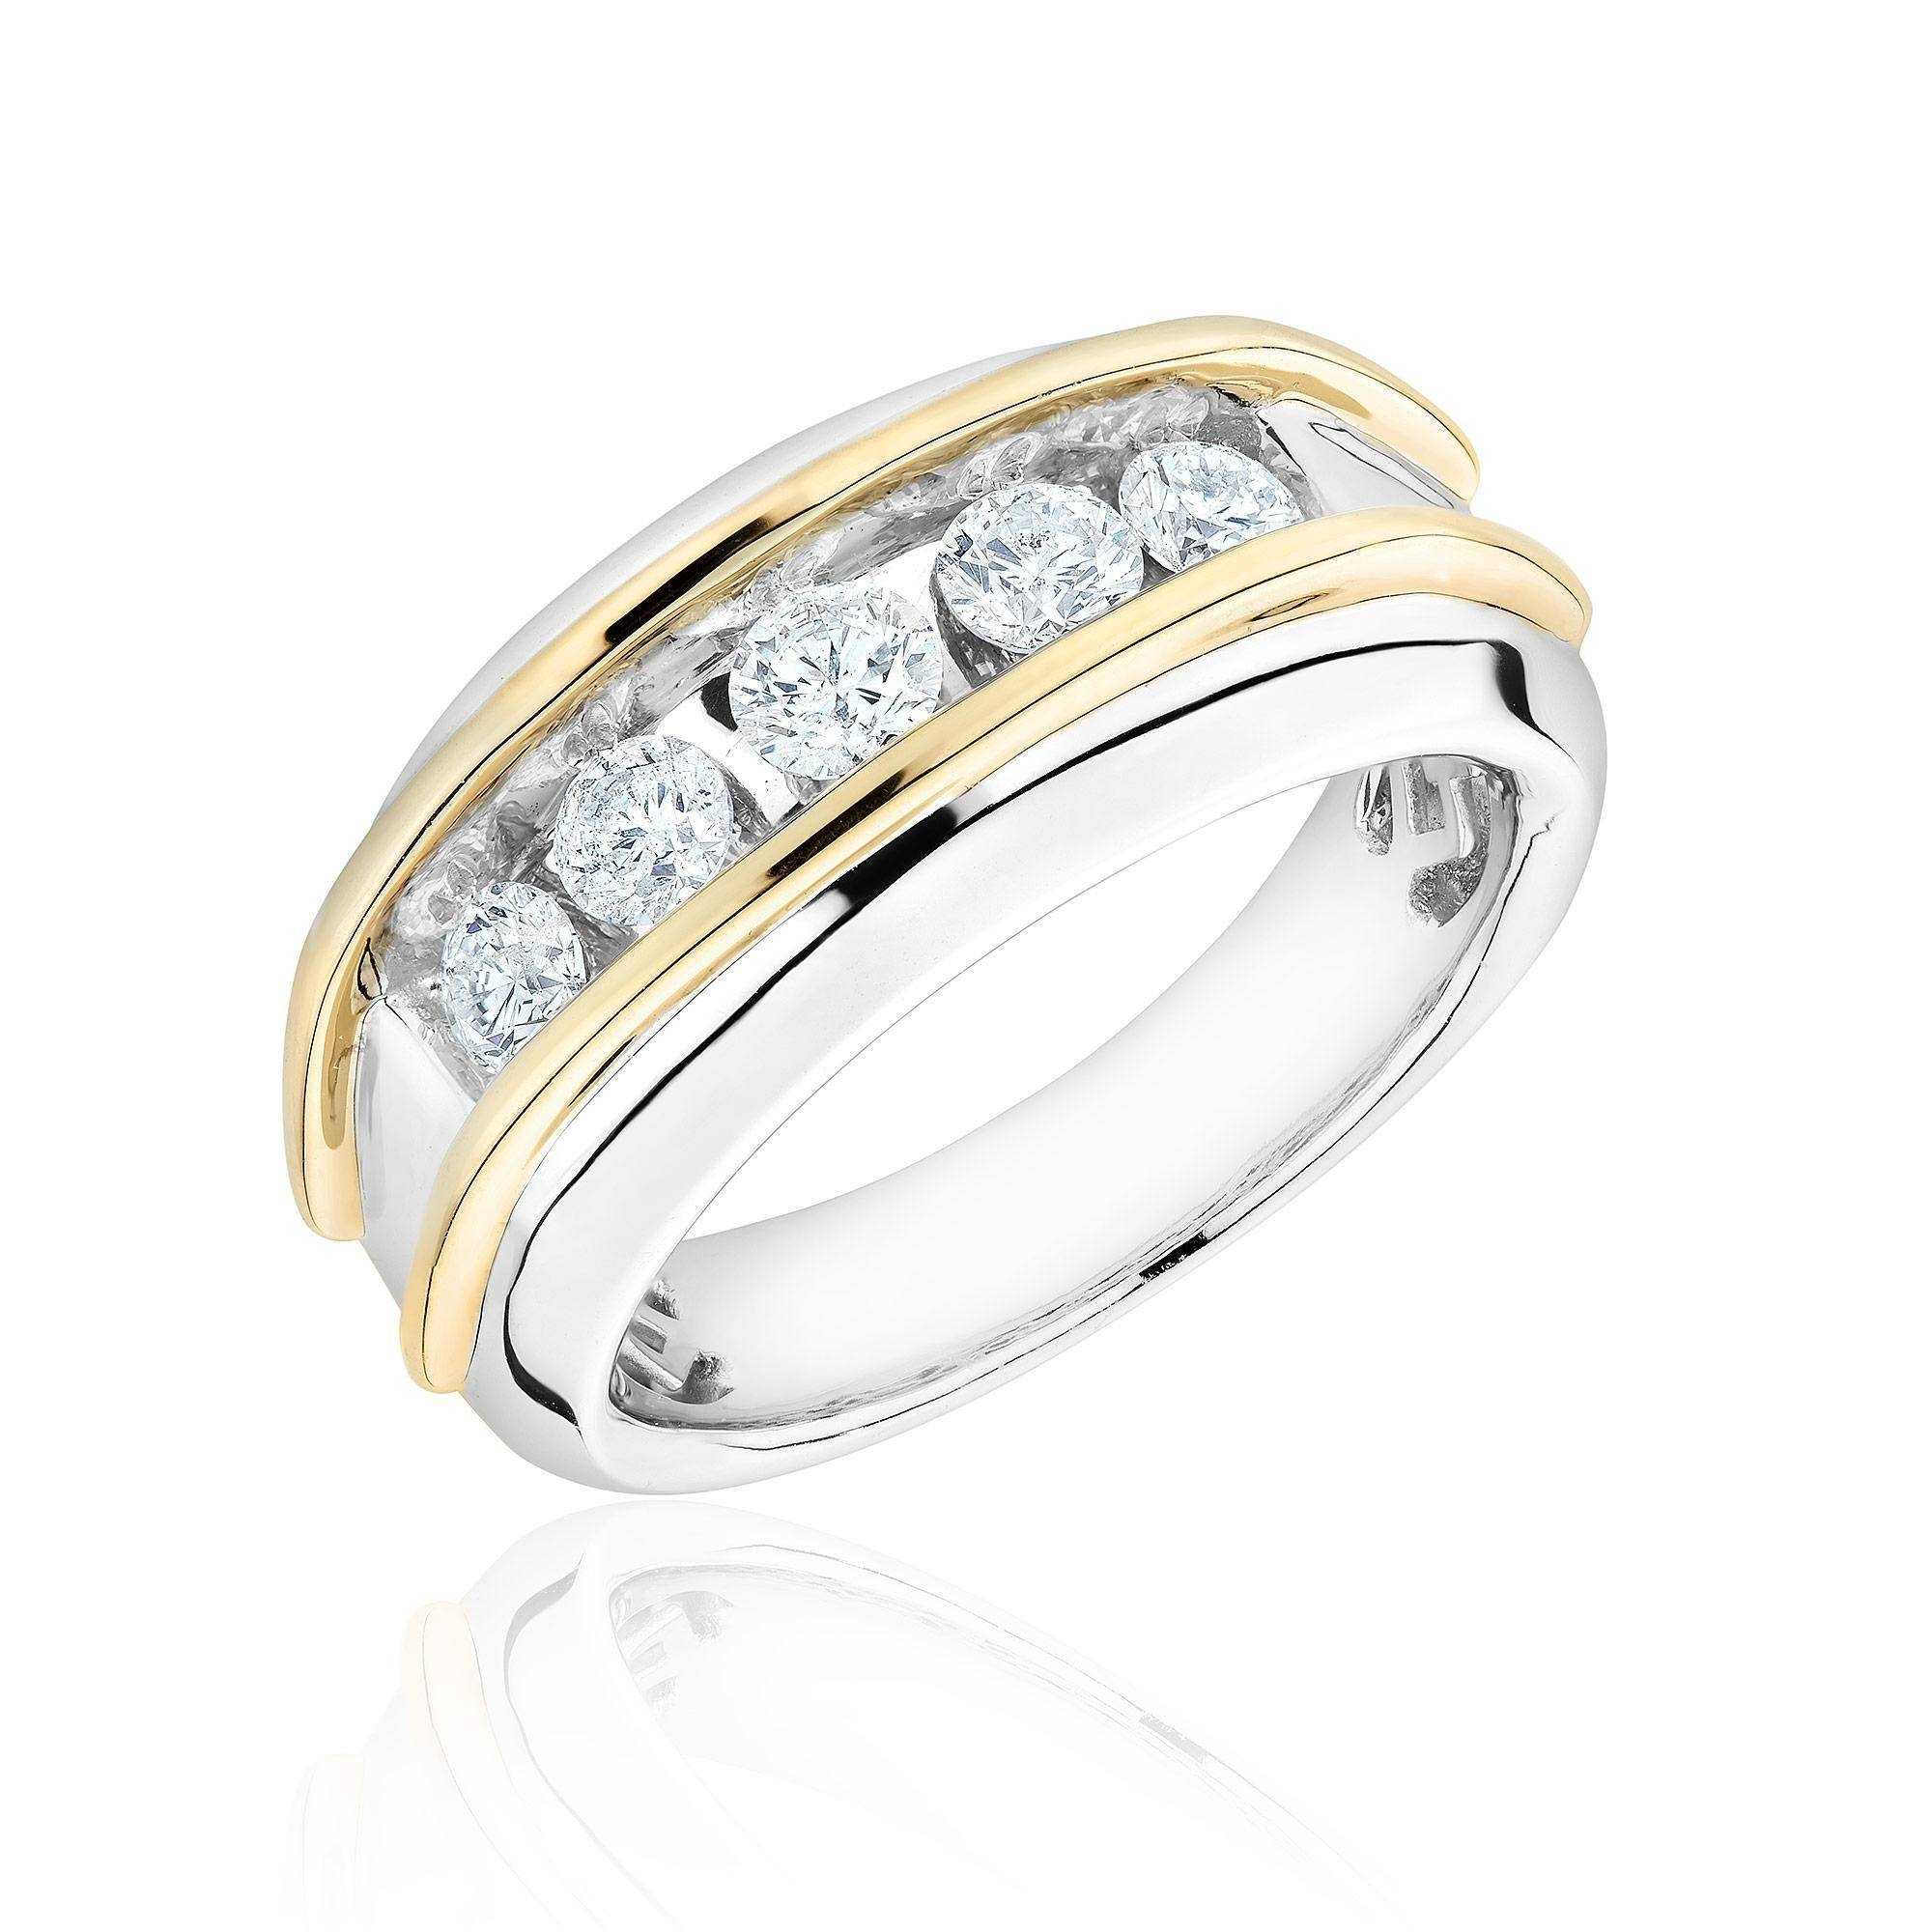 Wedding Bands Page 1 | Reeds Jewelers Throughout Jewelry Wedding Bands (View 15 of 15)